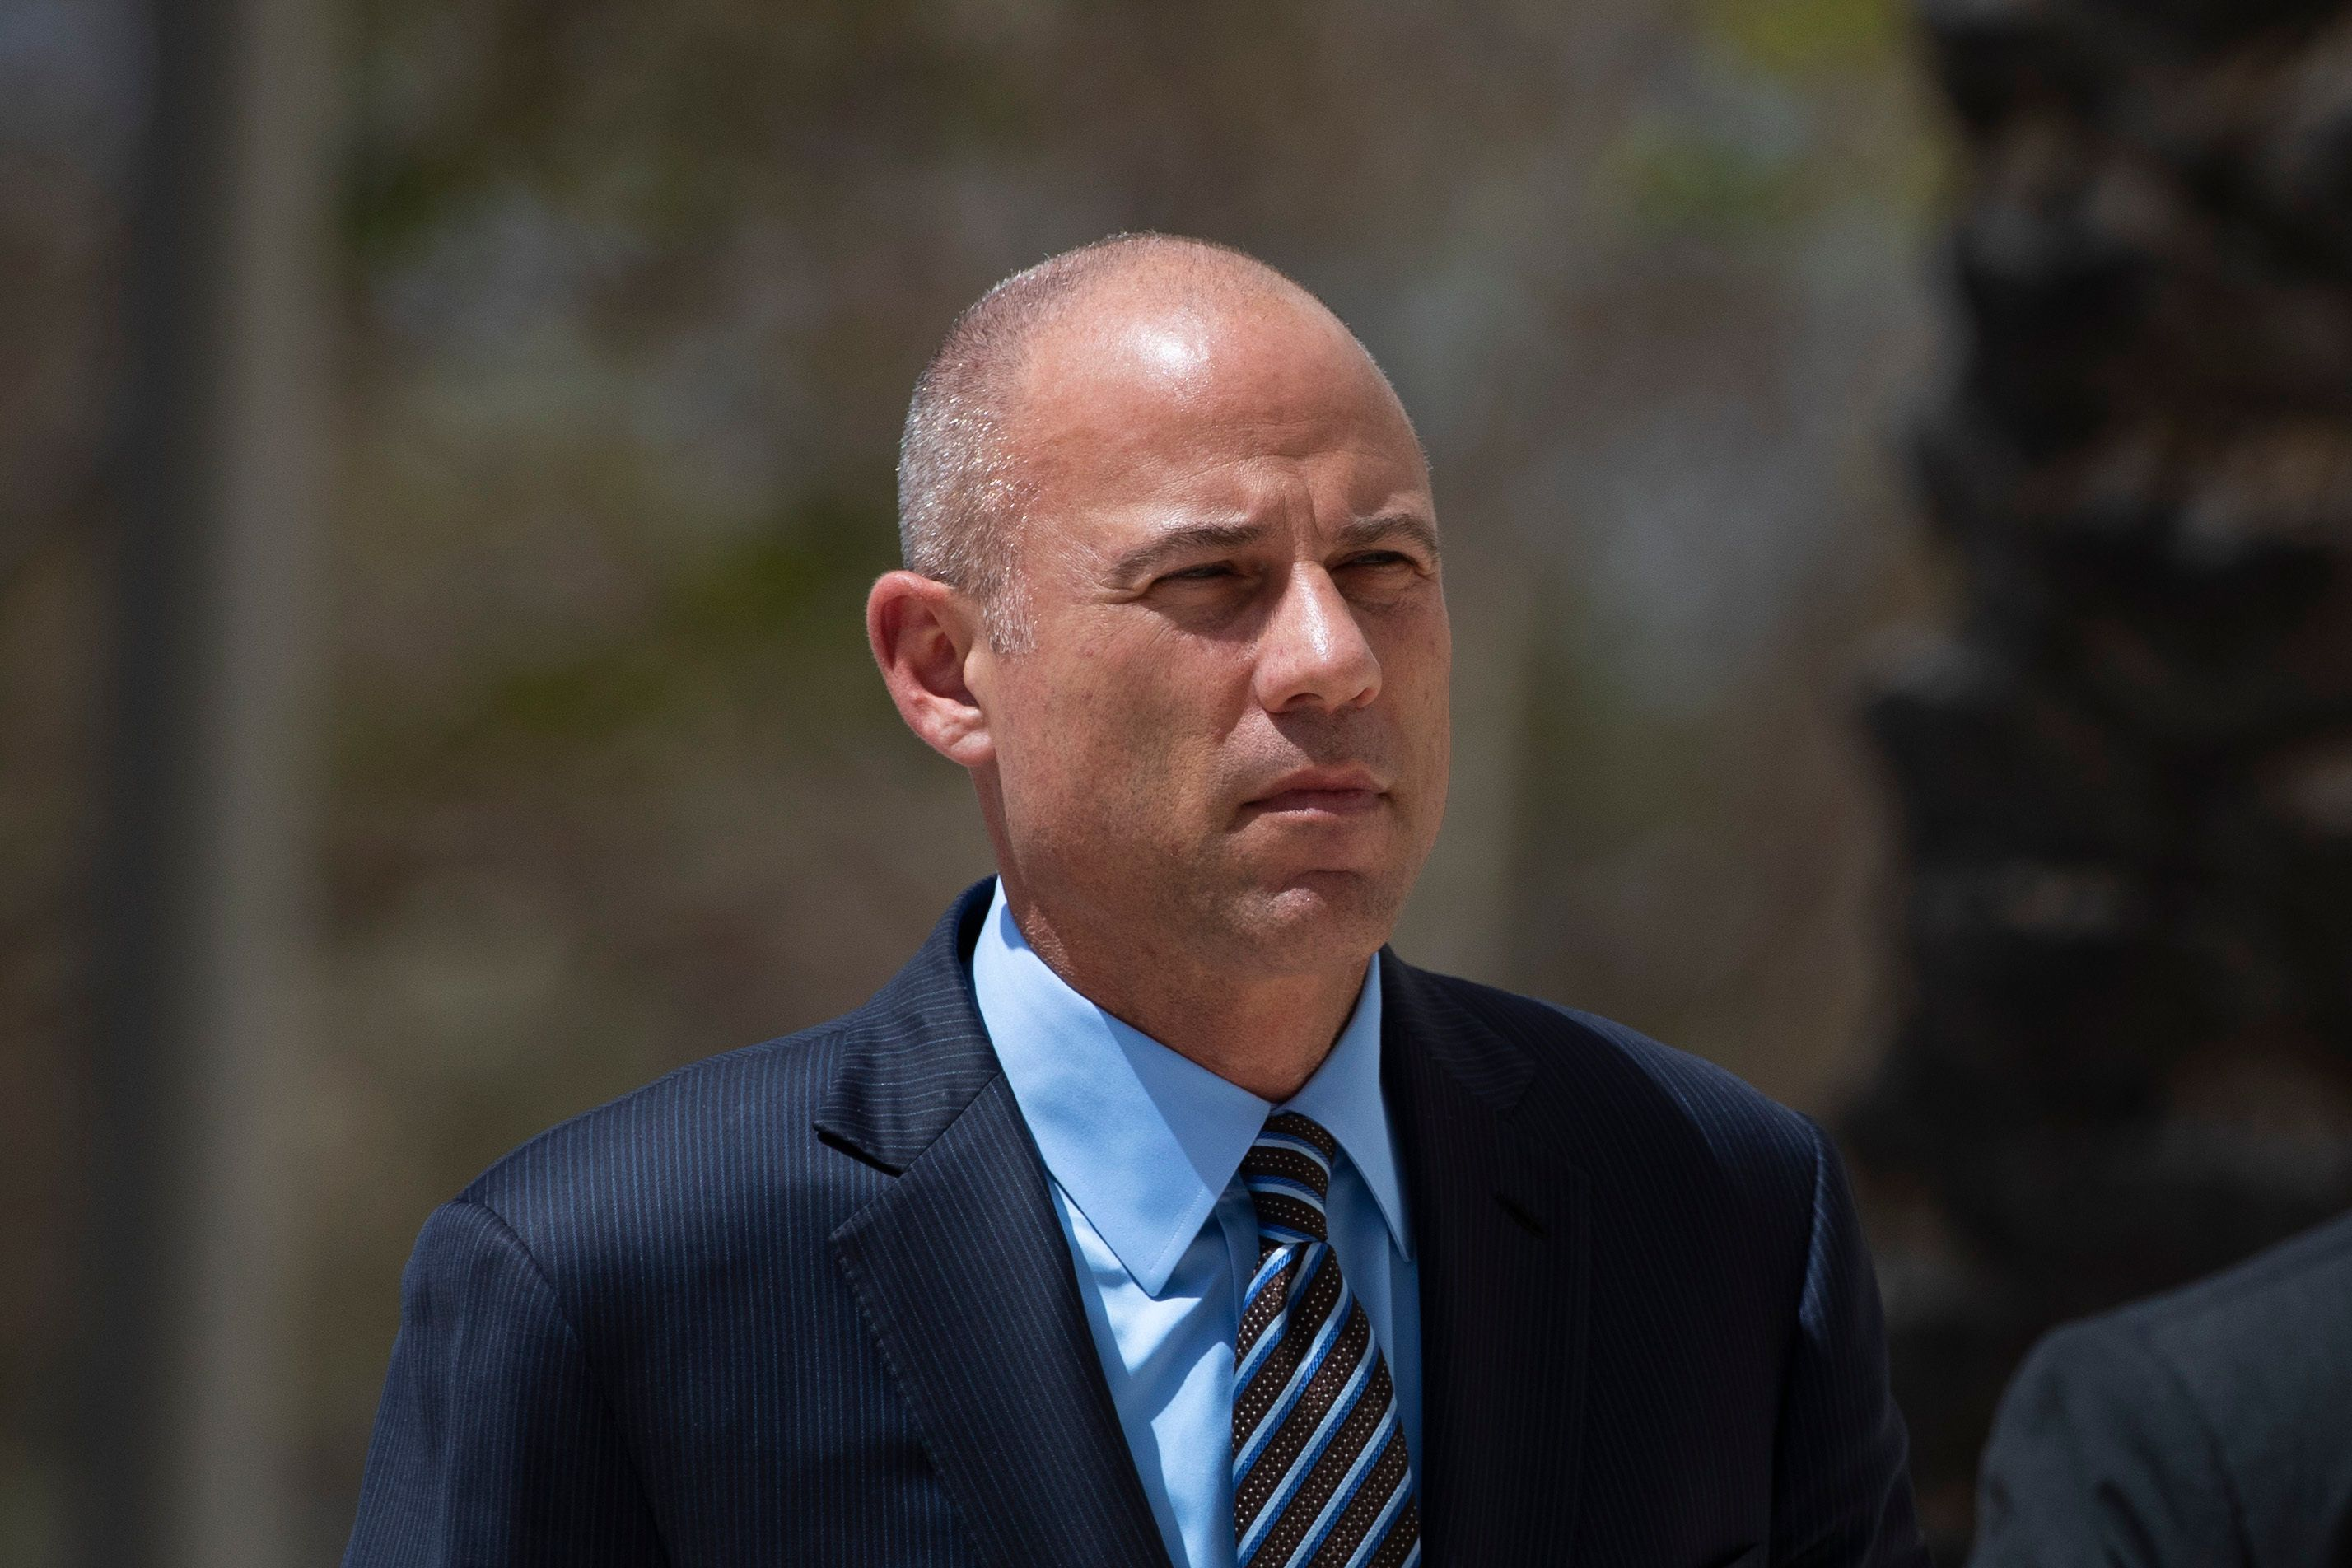 Attorney Michael Avenatti arrives at federal court Monday, April 1, 2019, in Santa Ana, Calif. Avenatti appeared in federal court on charges he fraudulently obtained $4 million in bank loans and pocketed $1.6 million that belonged to a client. (AP Photo/Jae C. Hong)